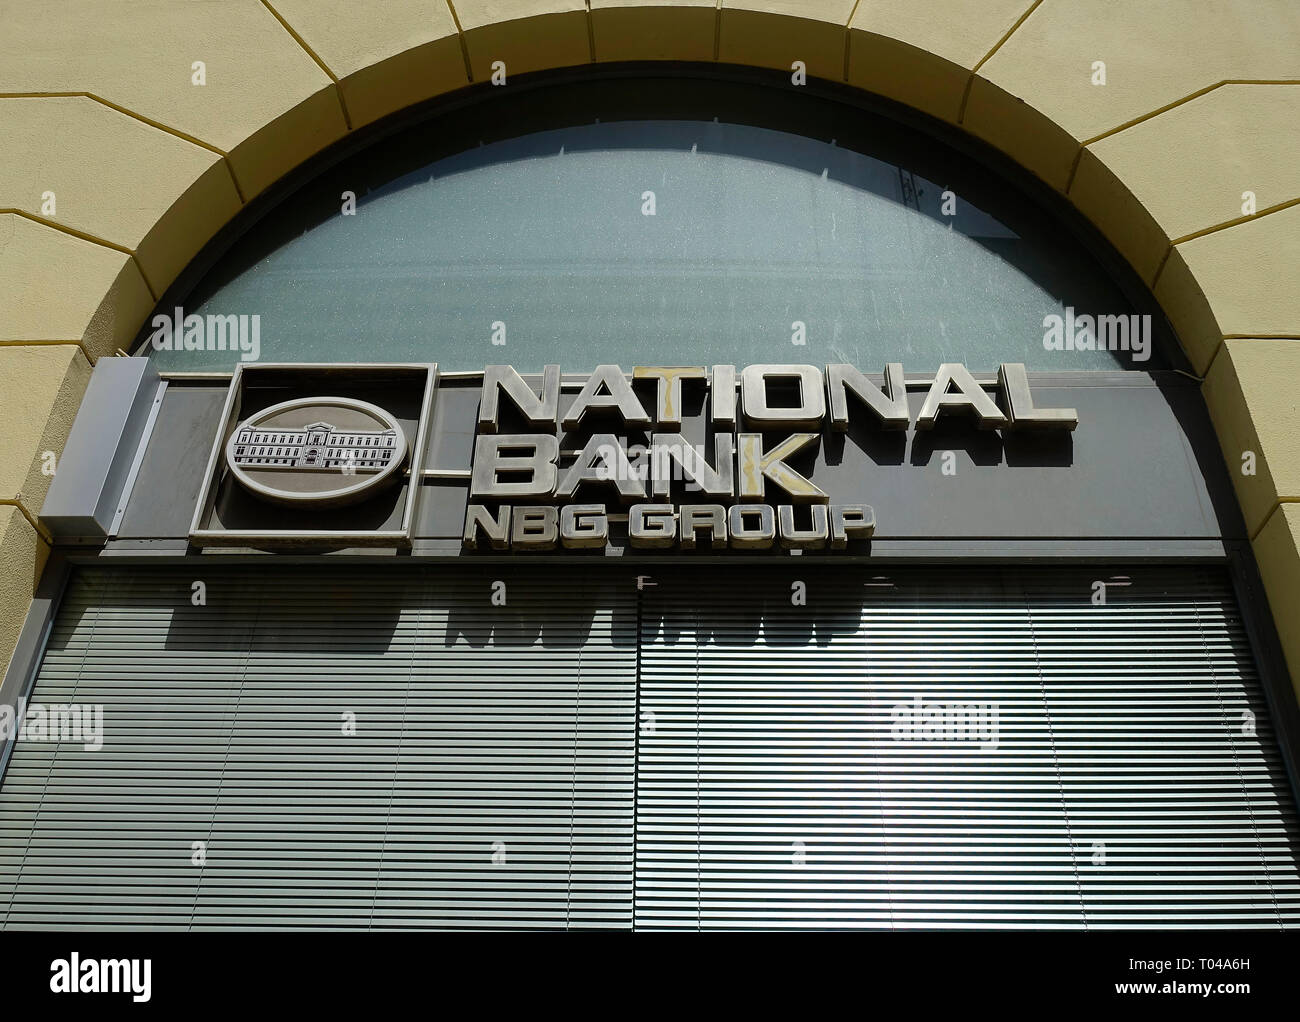 National Bank, Corfu Town, Greece - Stock Image